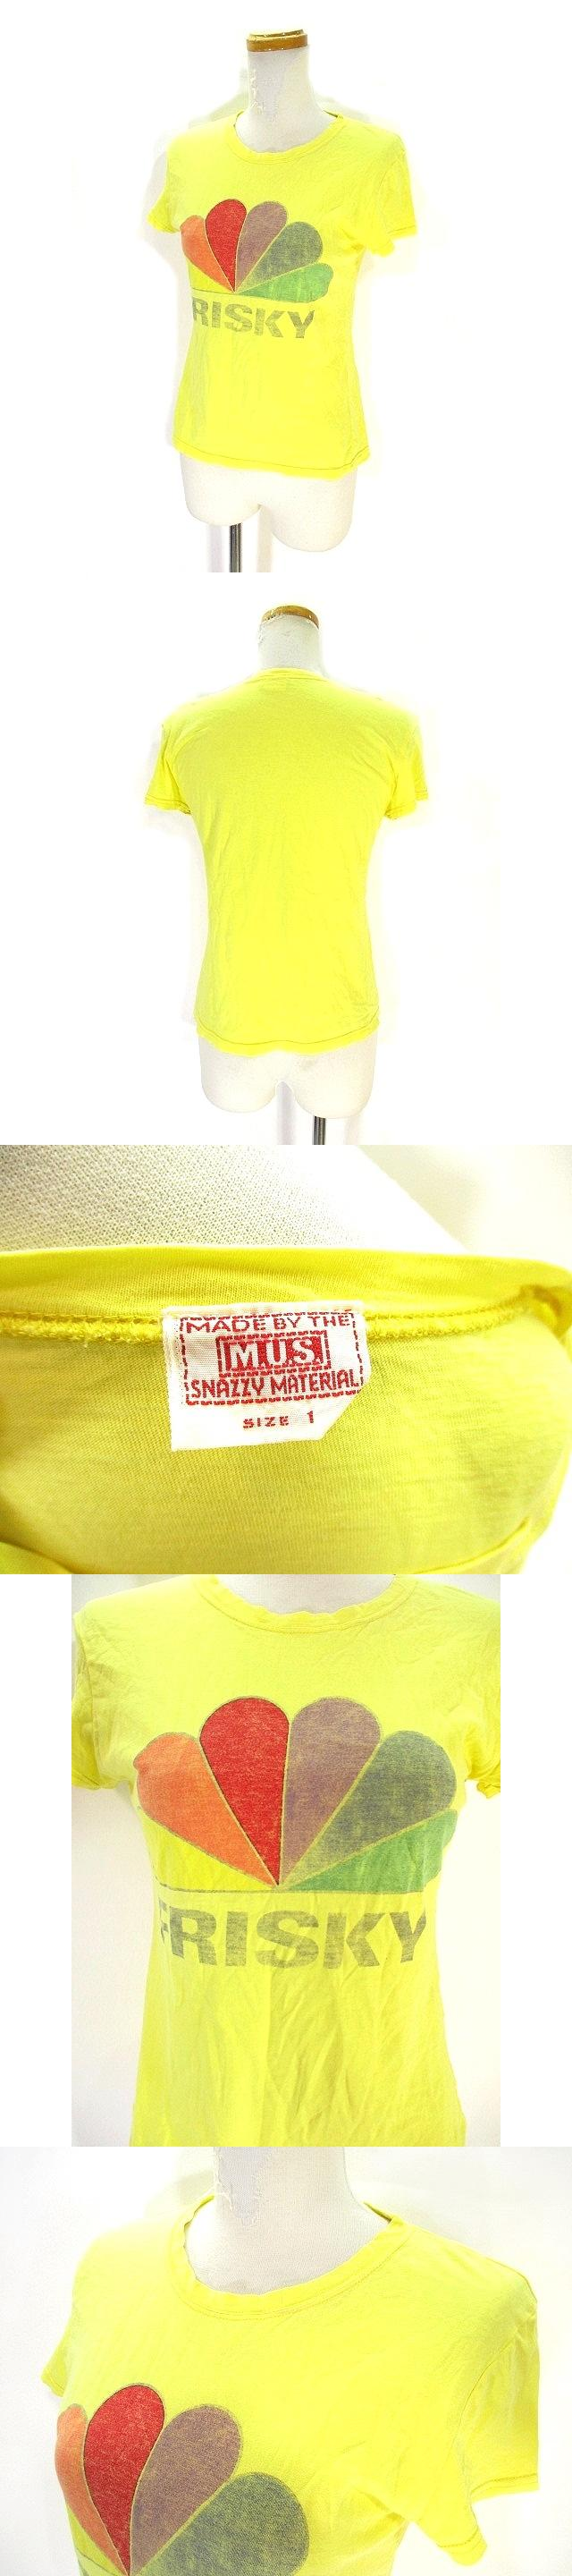 M.U.S. SNAZZY MATERIAL コットン Tシャツ カットソー 半袖 フレンチスリーブ クルーネック プリント 総柄 1 イエロー 黄